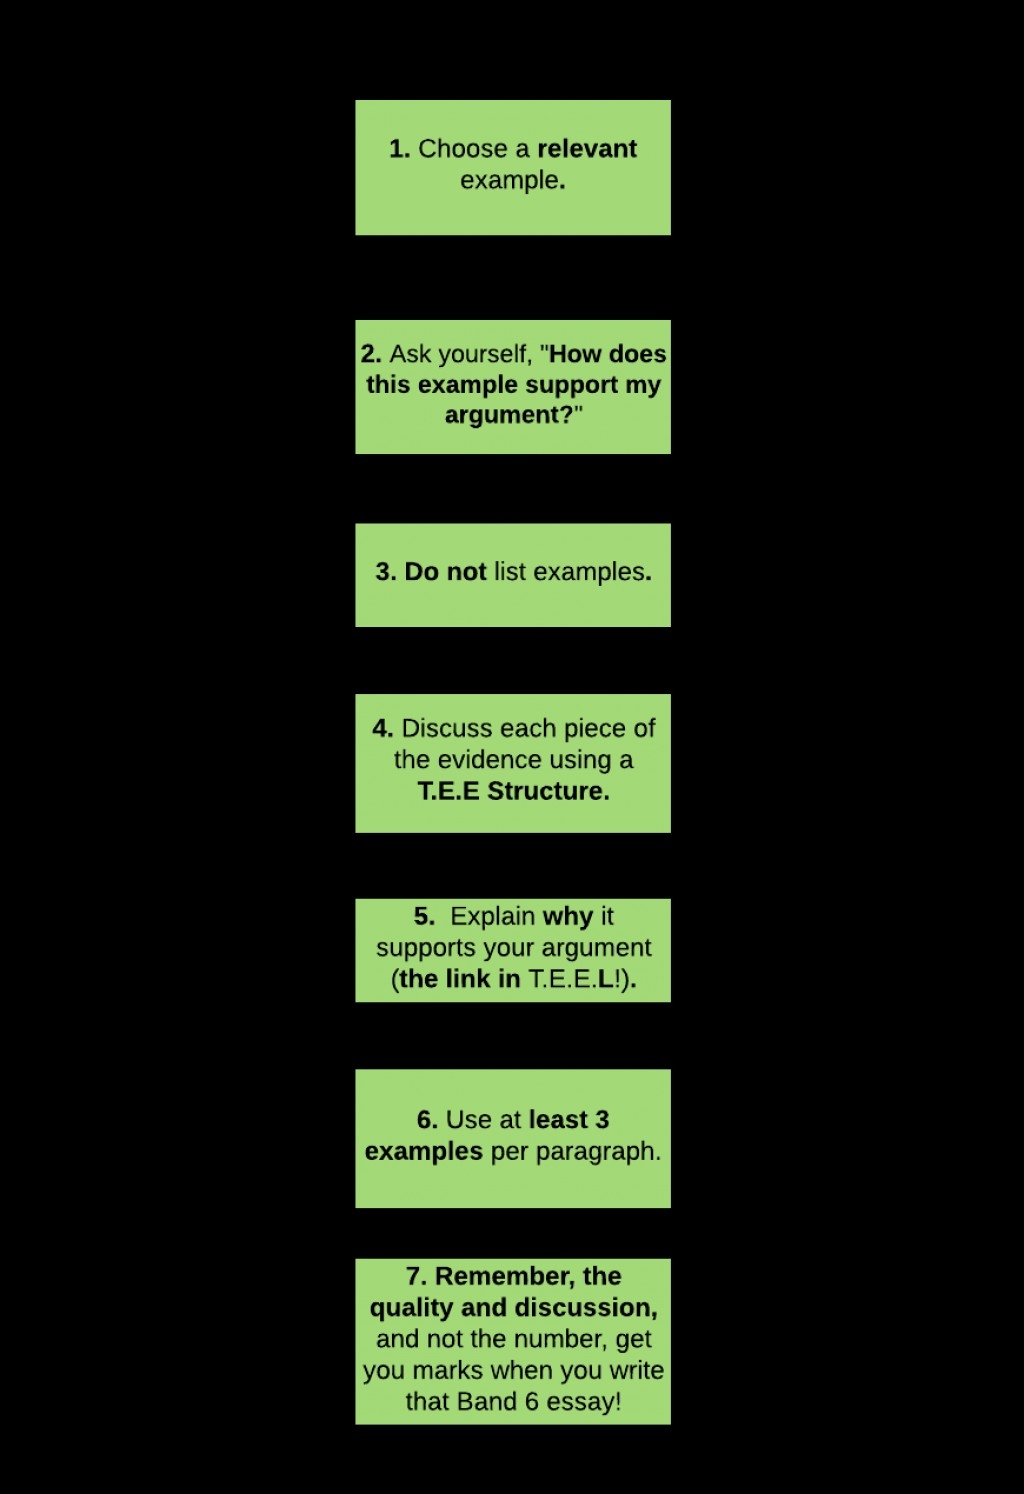 014 Flowchart The Process Of How To Use Evidence Essay Example Memorise An In Unbelievable Hour A Few Hours Remember 1 Large